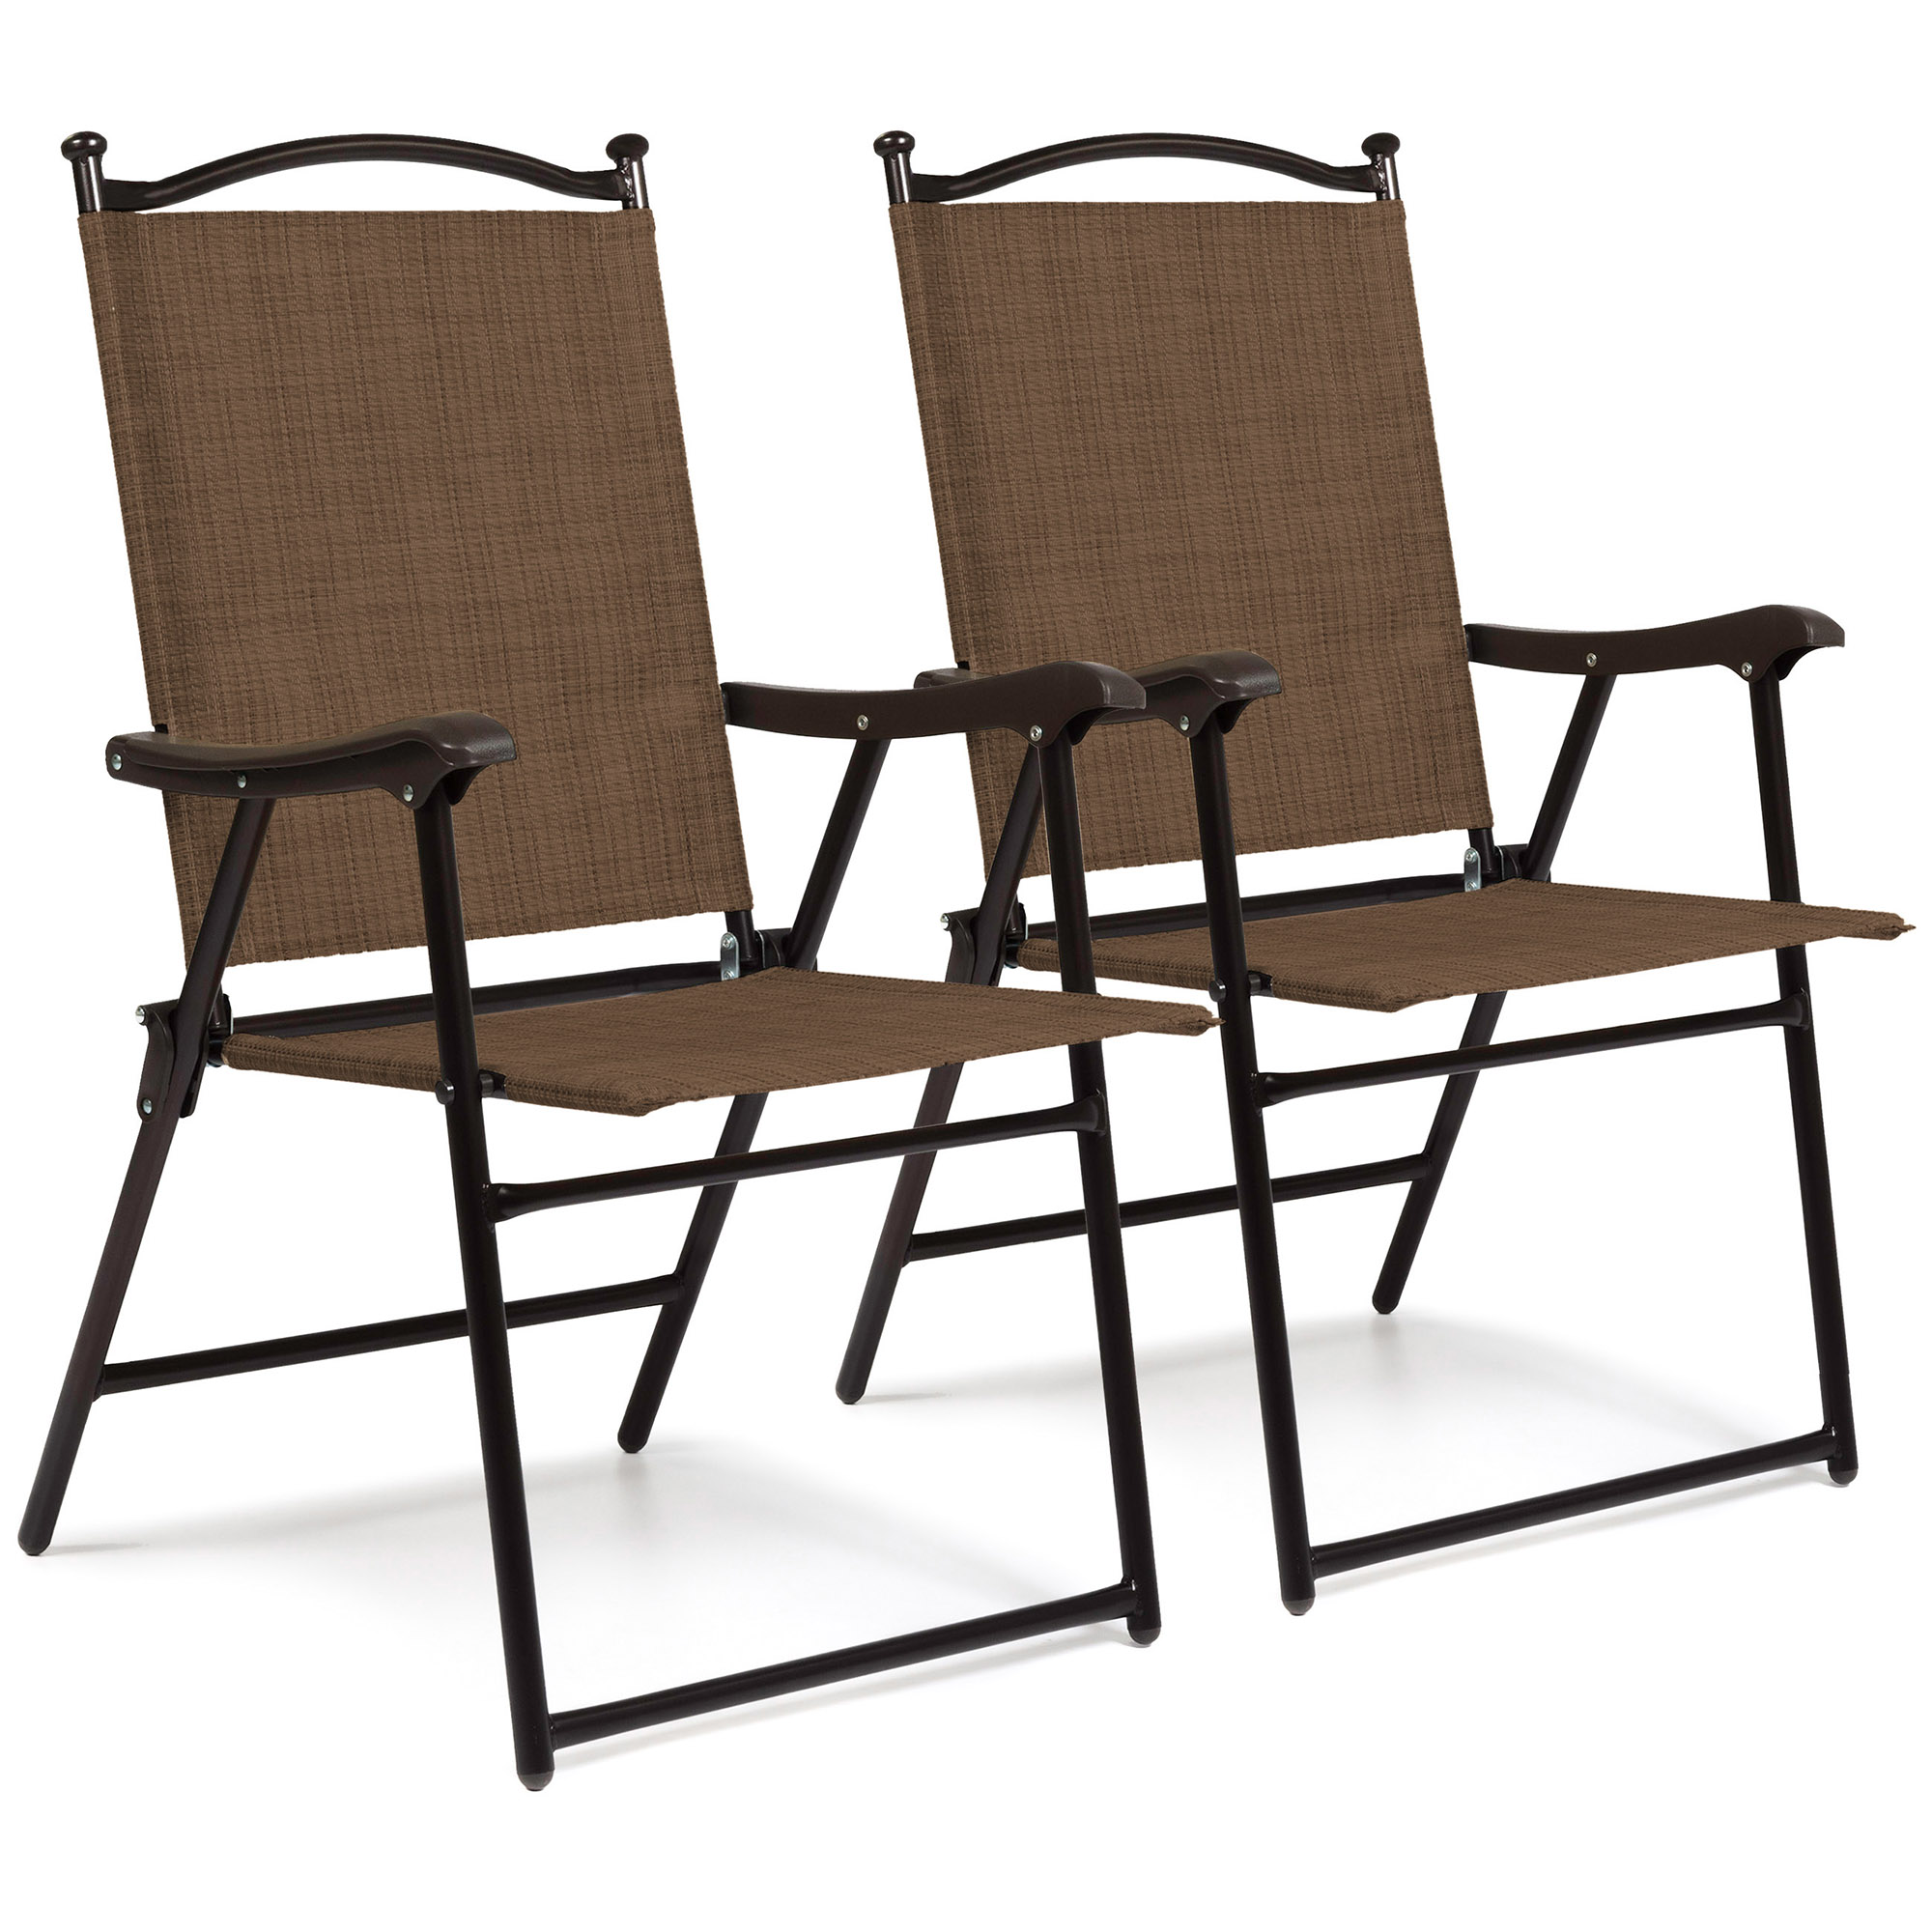 Mesh Patio Chairs Best Choice Products Set Of 2 Outdoor Mesh Fabric Portable